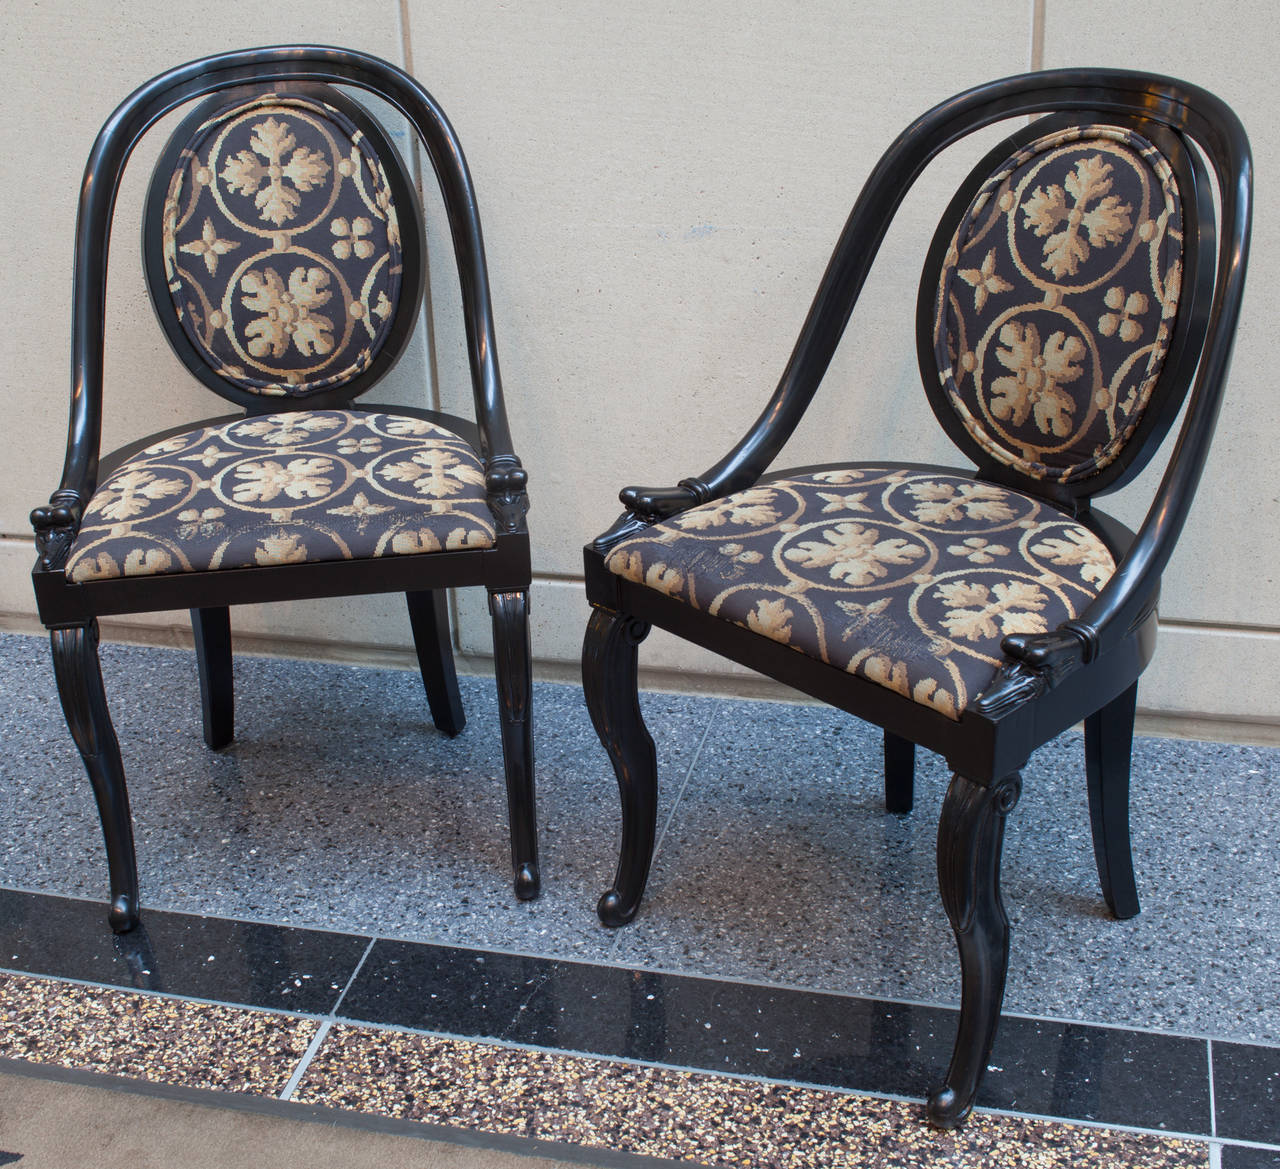 This pair of black lacquer spoon back chairs have a very graceful form. The oval backrest, the sloping arms and the very graceful cabriole front legs terminating in a scroll foot. The tapestry is worn at the seat front.